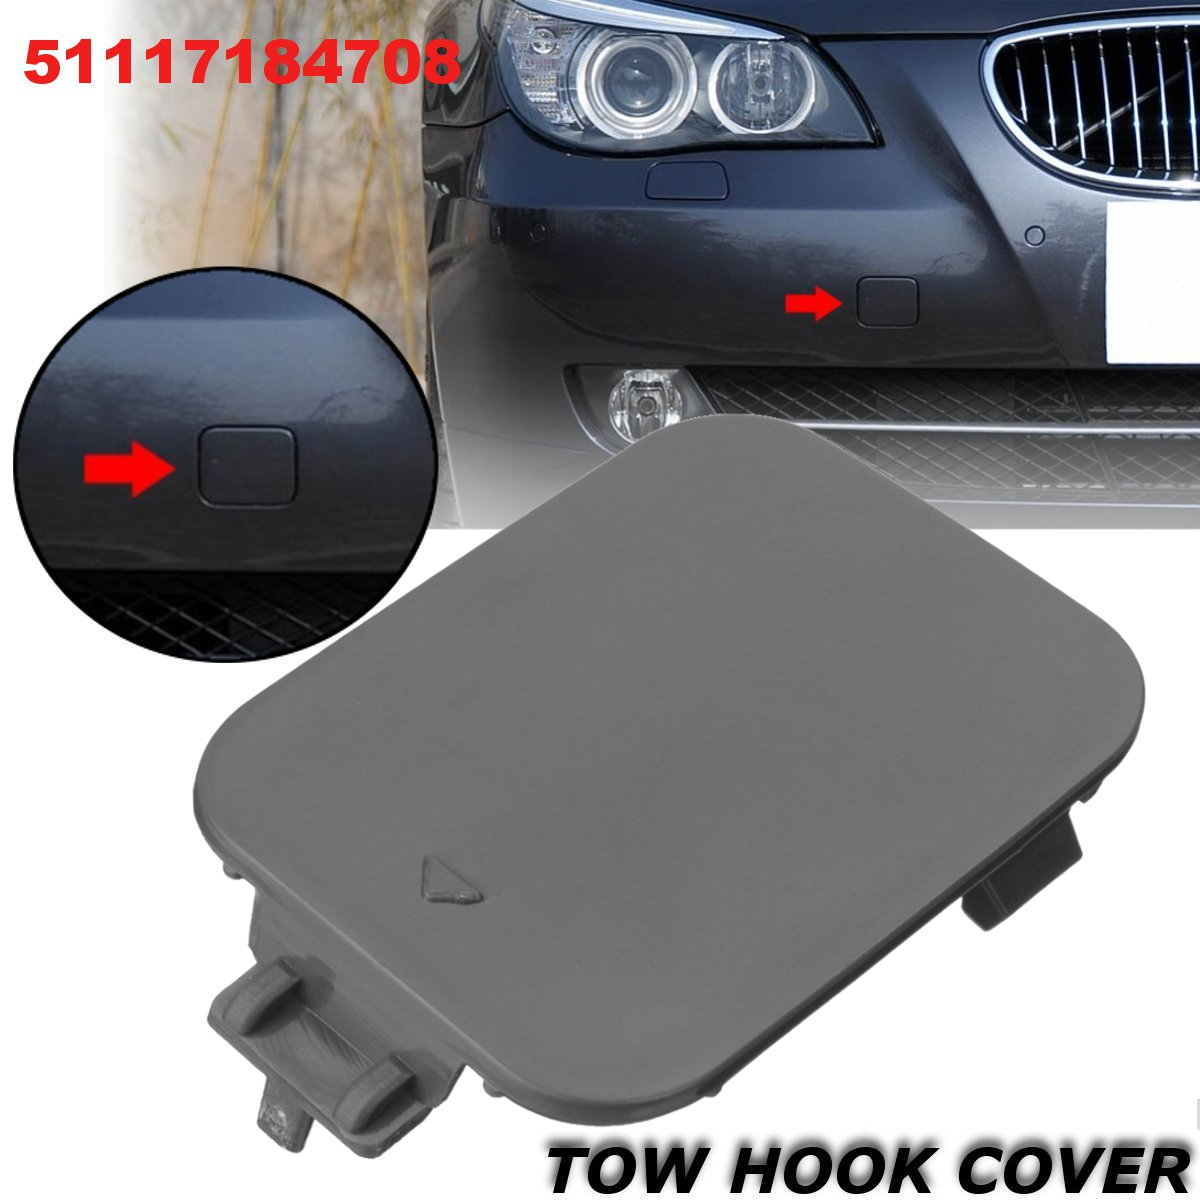 Gary Color Front Bumper Tow Hook Car Hook Cover Cap Trim for BMW 5 Series E60 E61 2008 2009 2010 Auto Replacement Exterior Parts